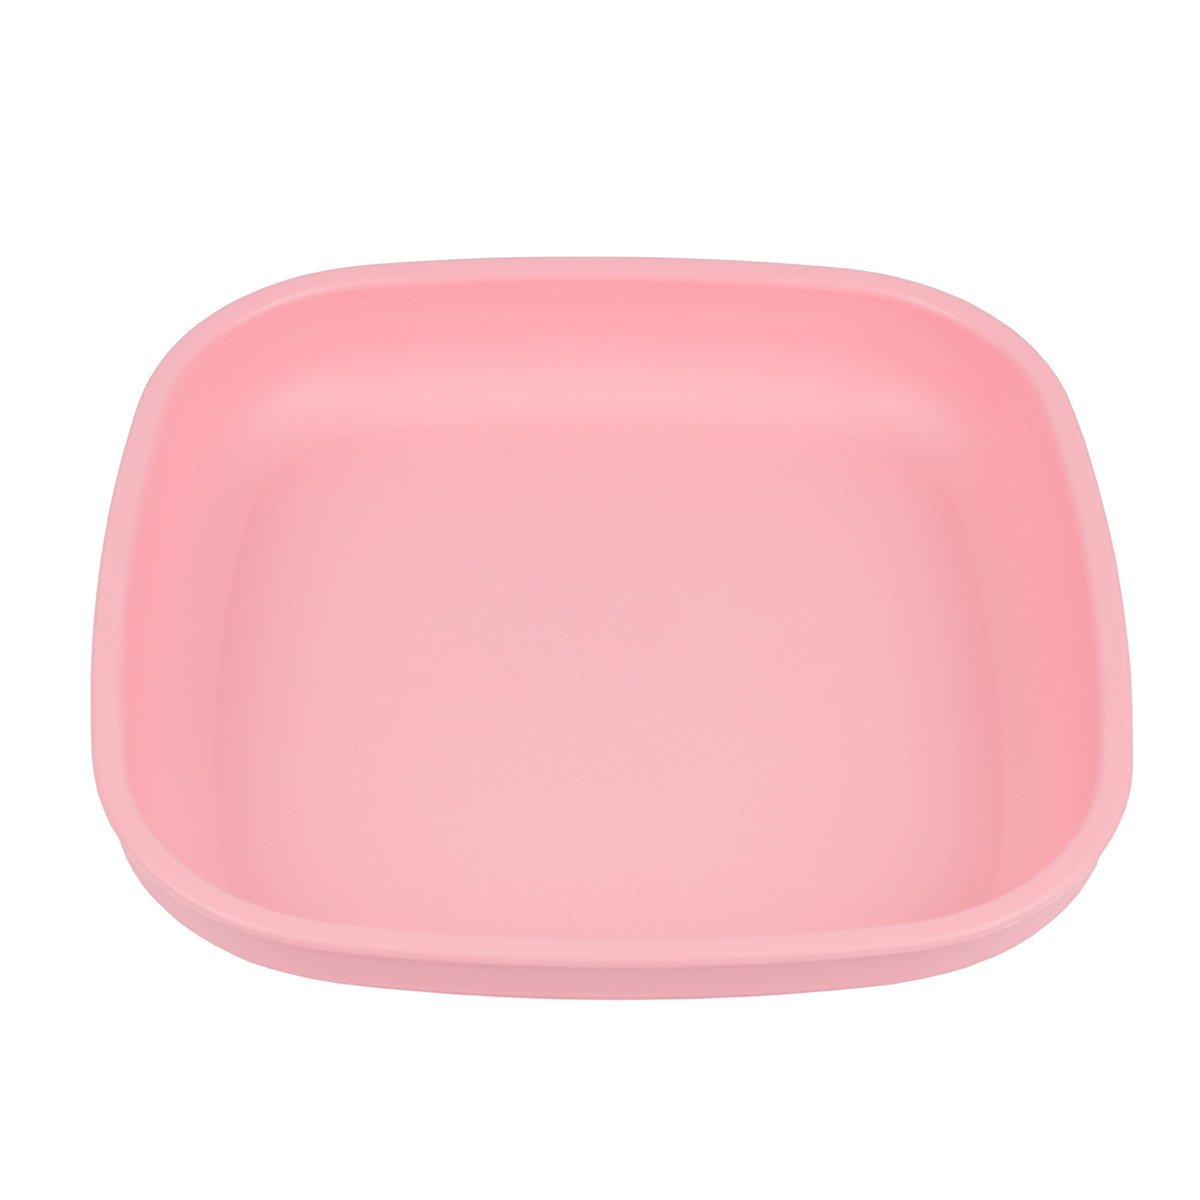 Replay Plate Replay Dinnerware Baby Pink at Little Earth Nest Eco Shop